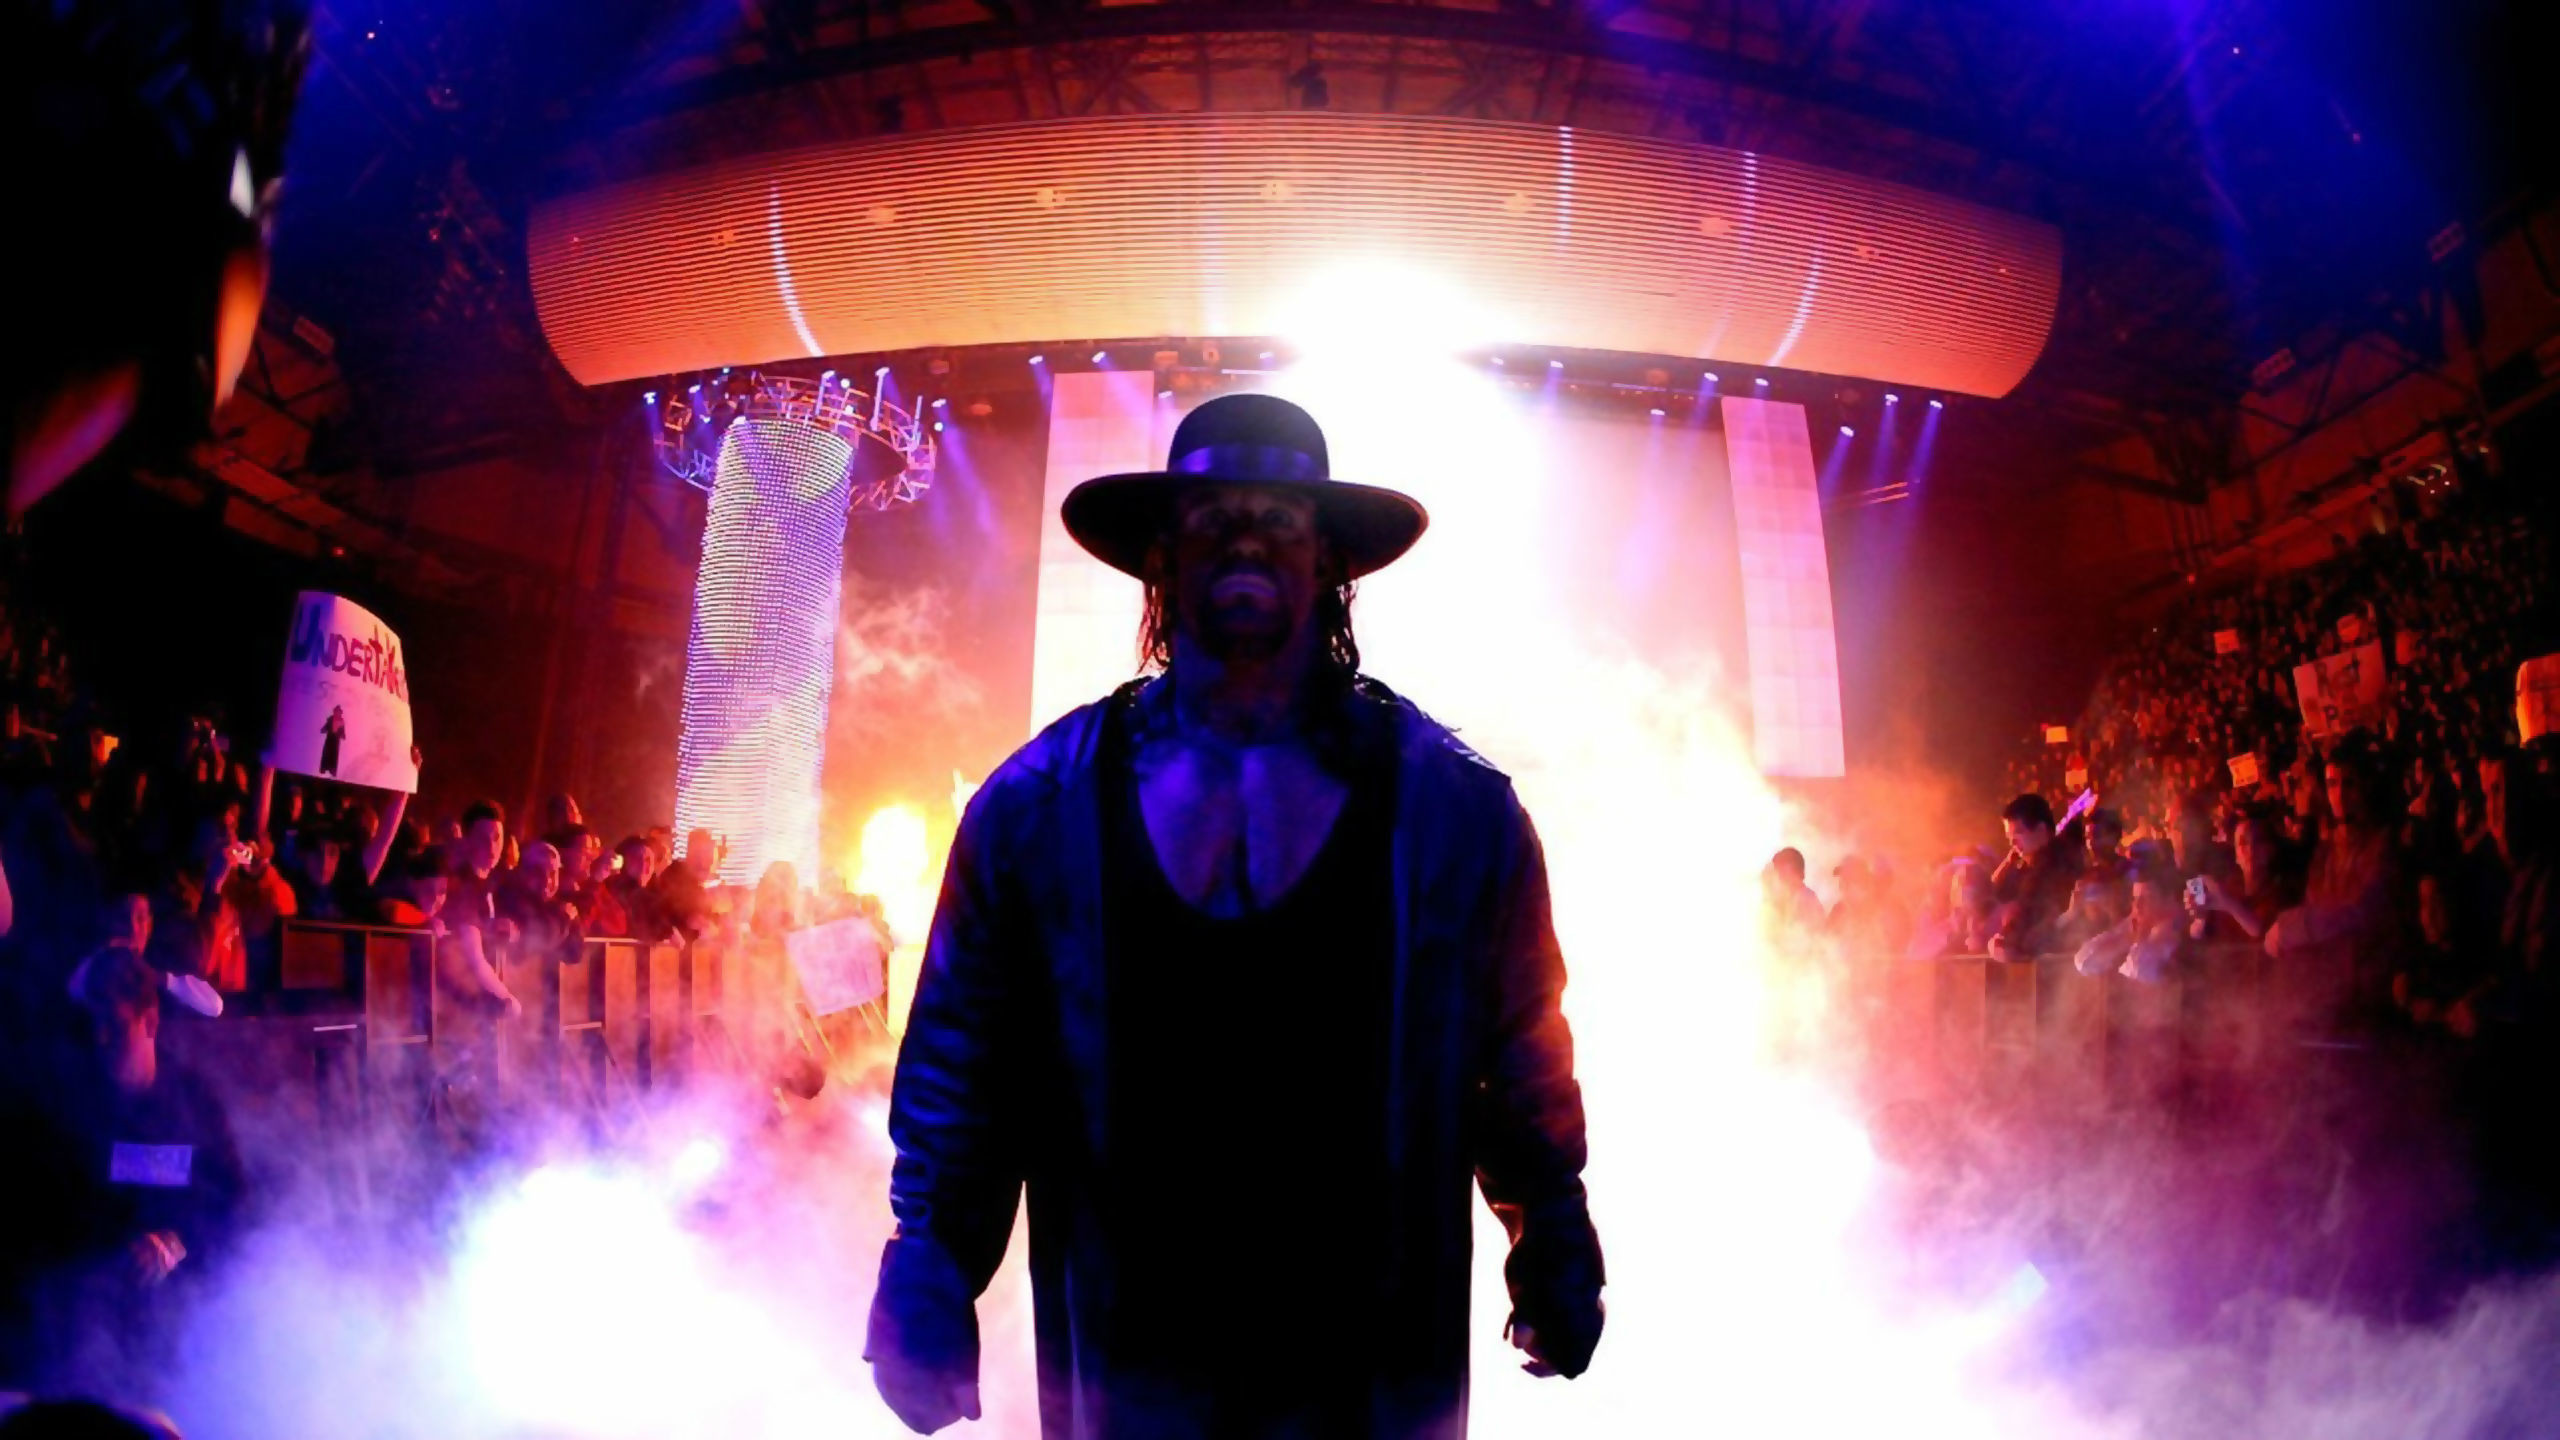 undertaker hd wallpaper 2014